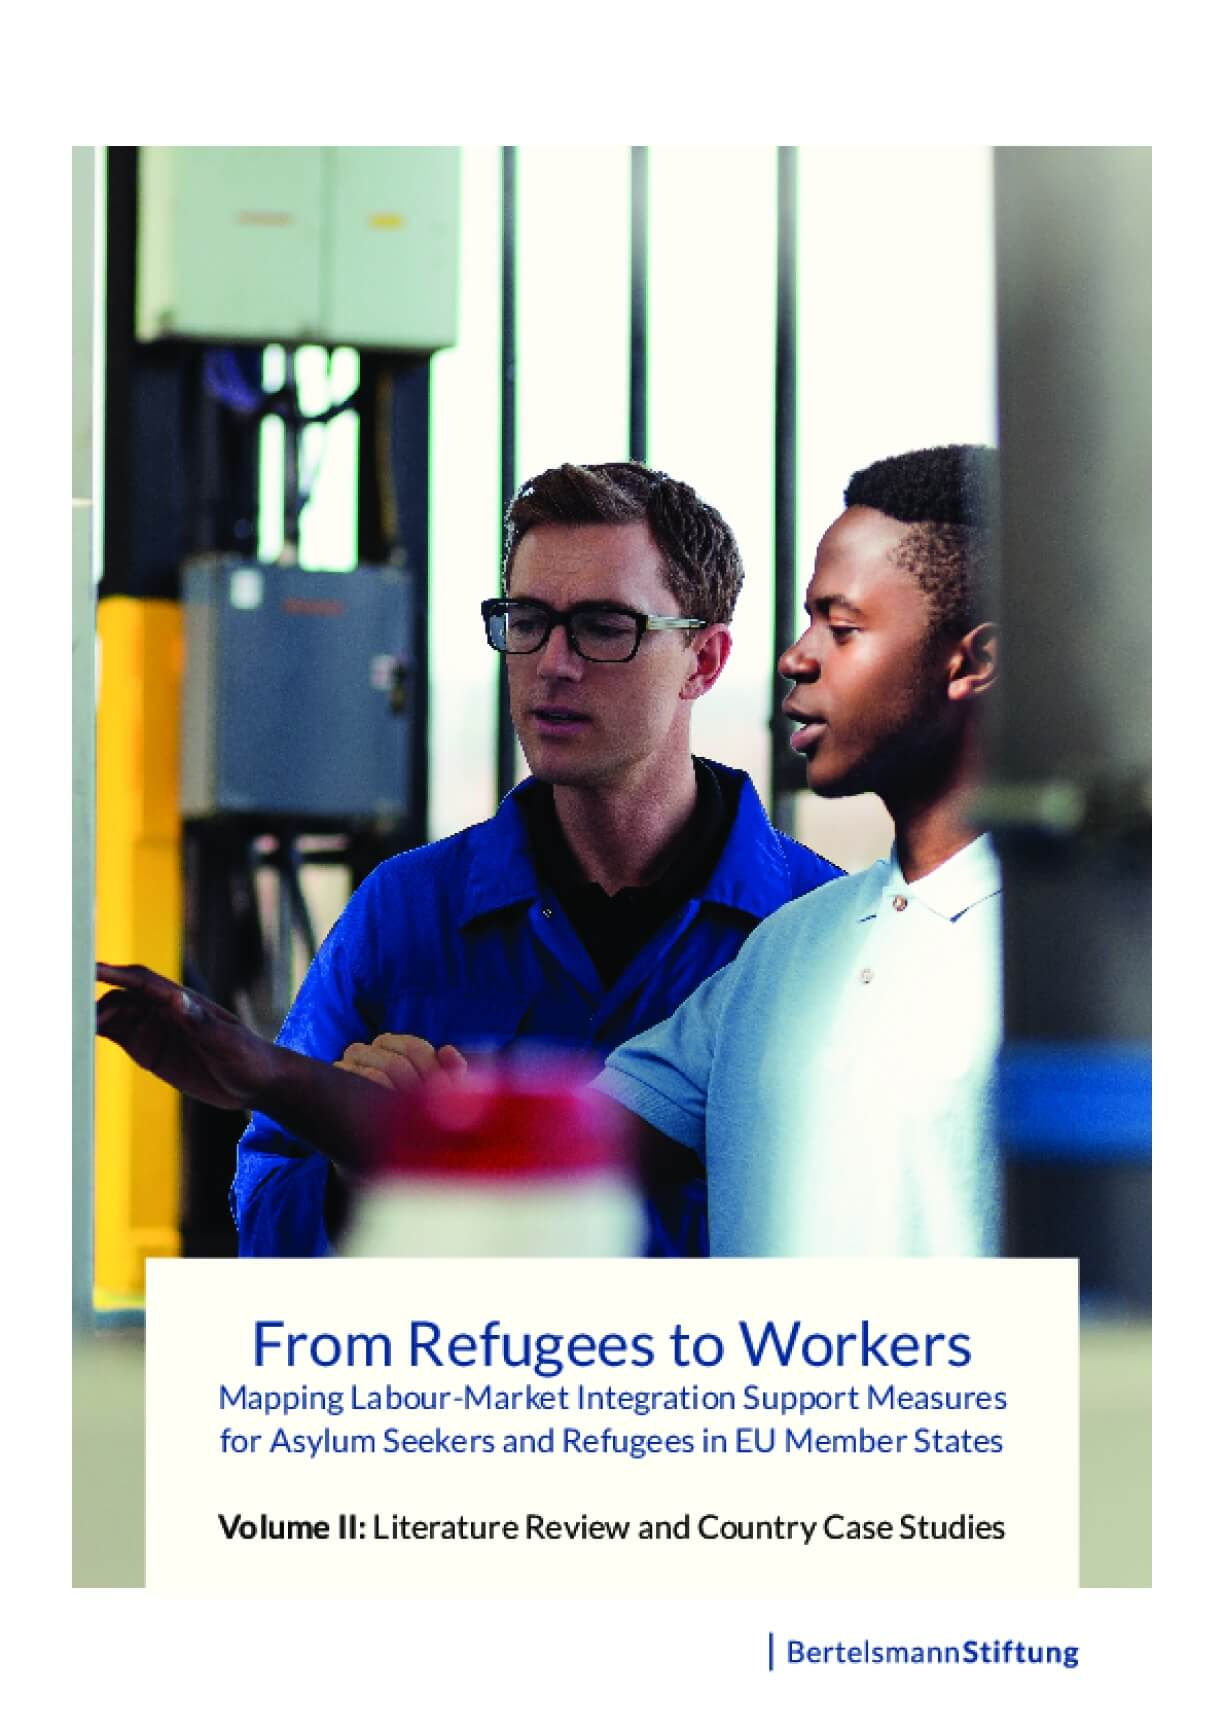 From Refugees to Workers: Mapping Labour-Market Integration Support Measures for Asylum Seekers and Refugees in EU Member States - Volume II: Literature Review and Country Case Studies